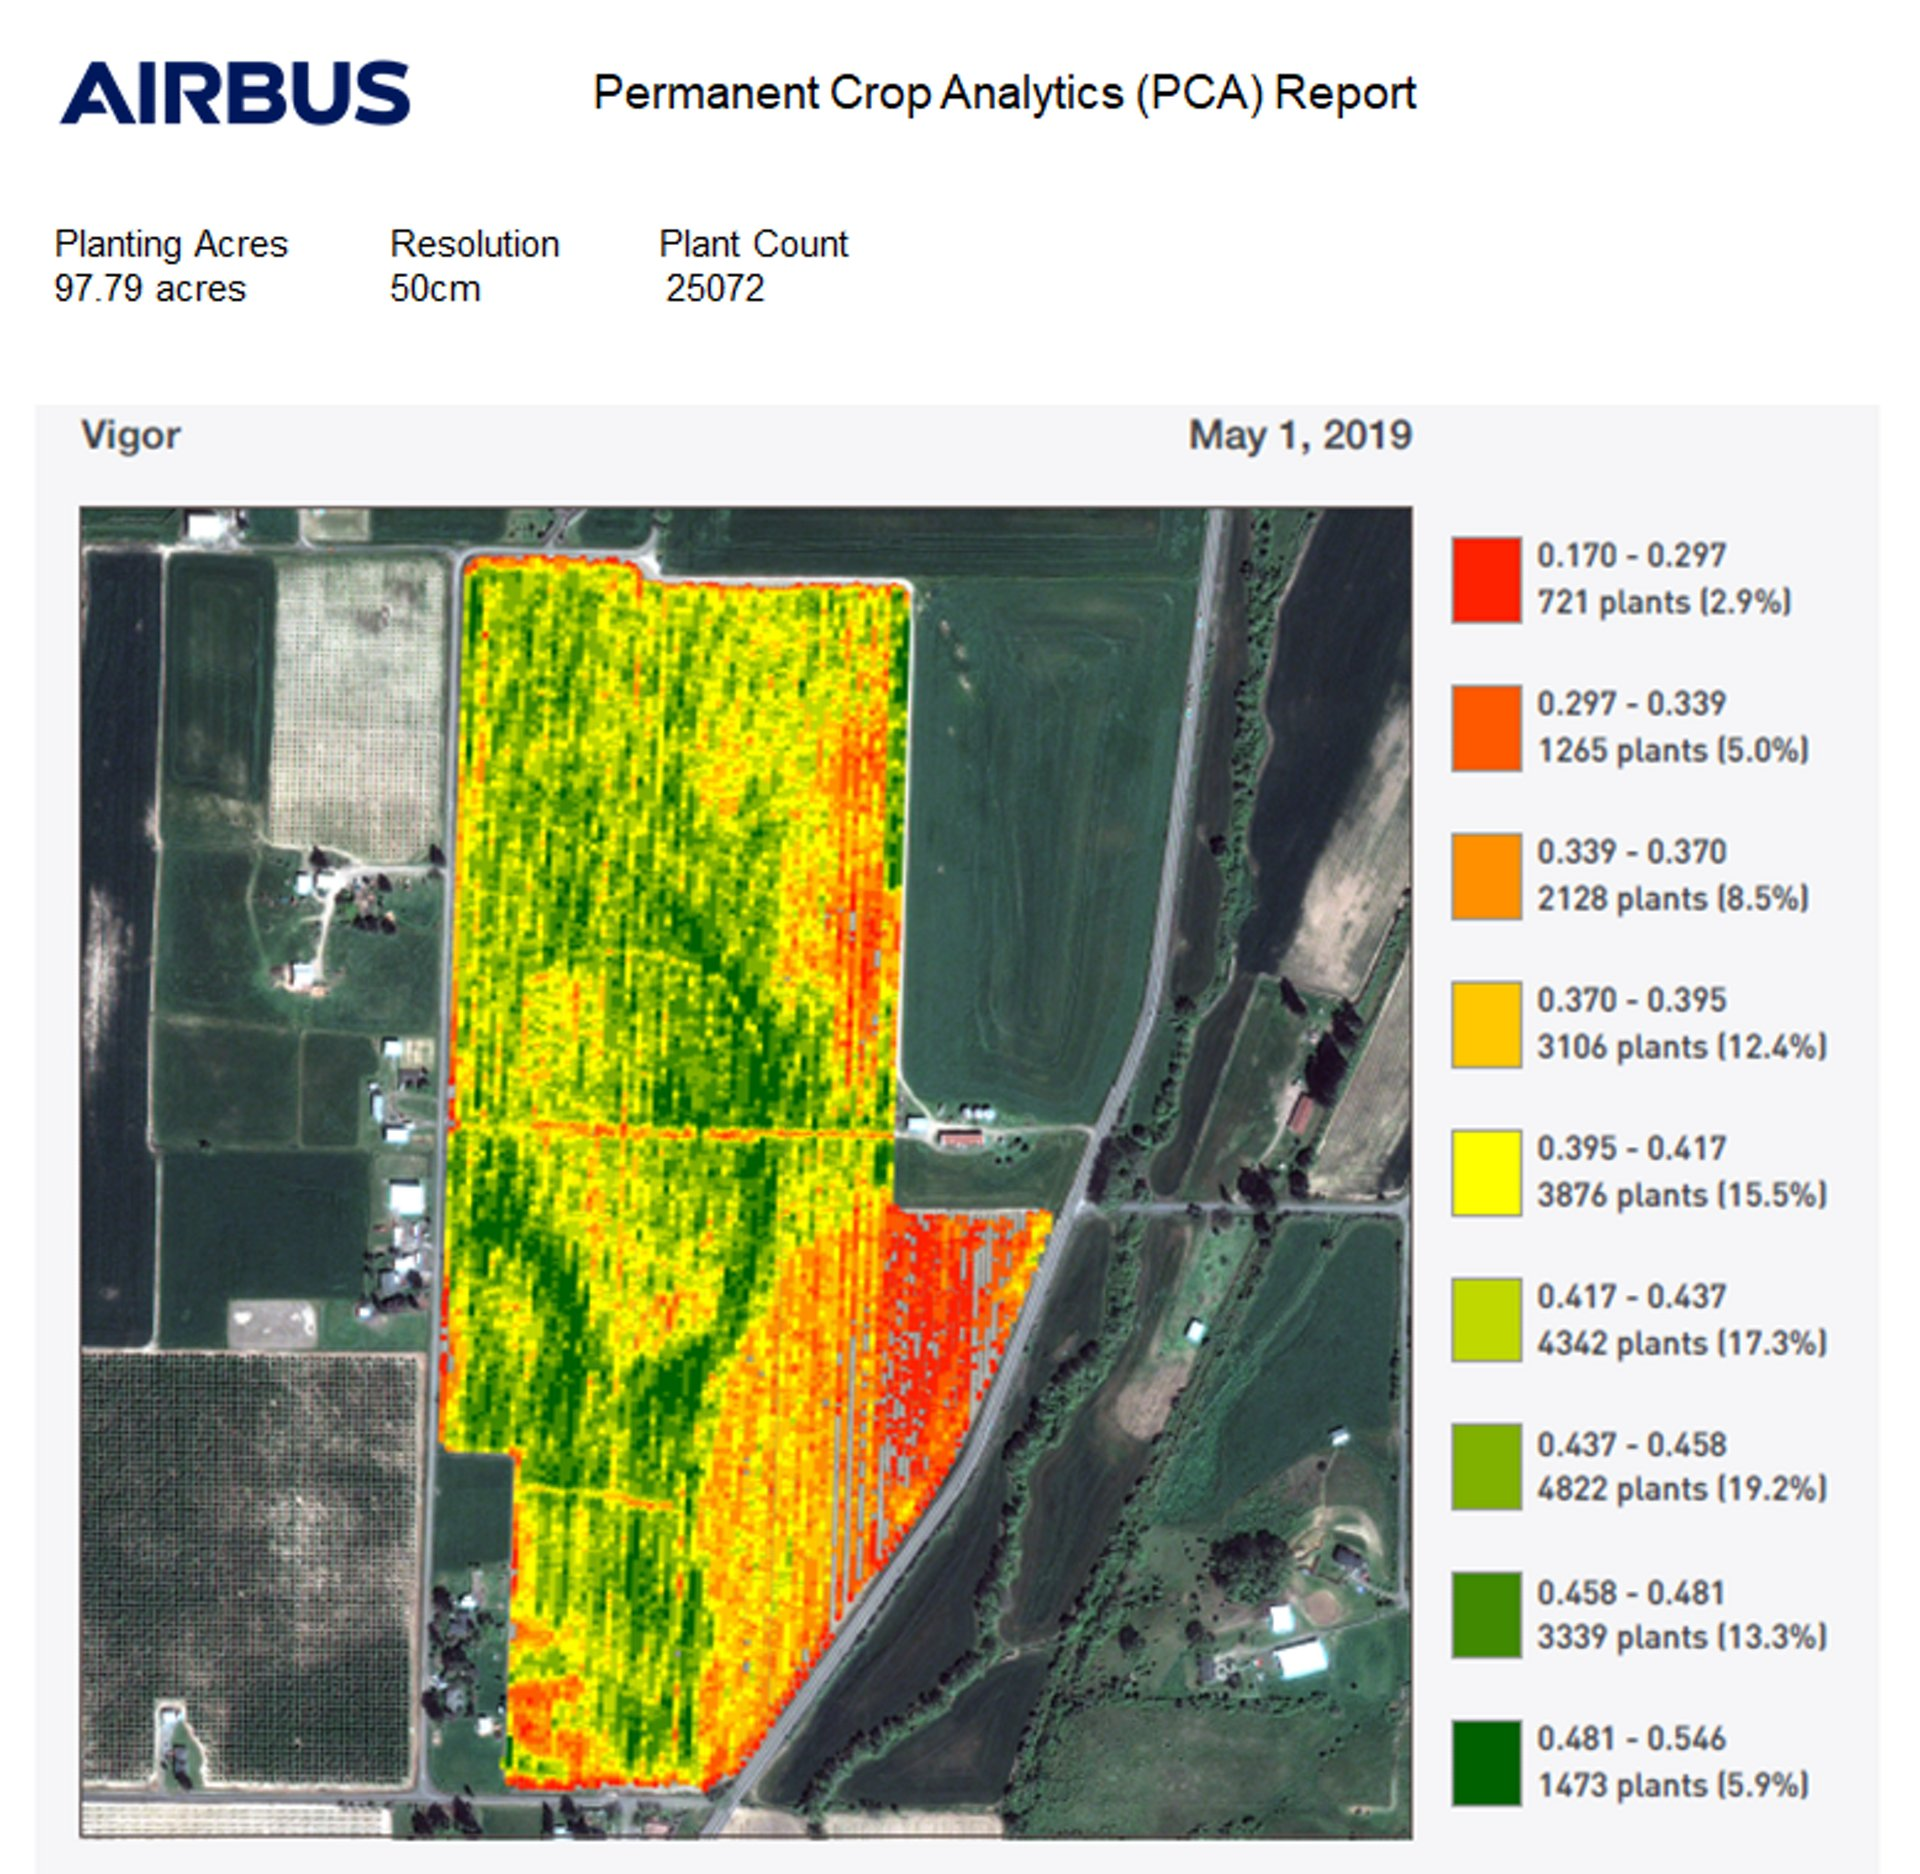 Permanent Crop Analytics Report as provided by AgNeo